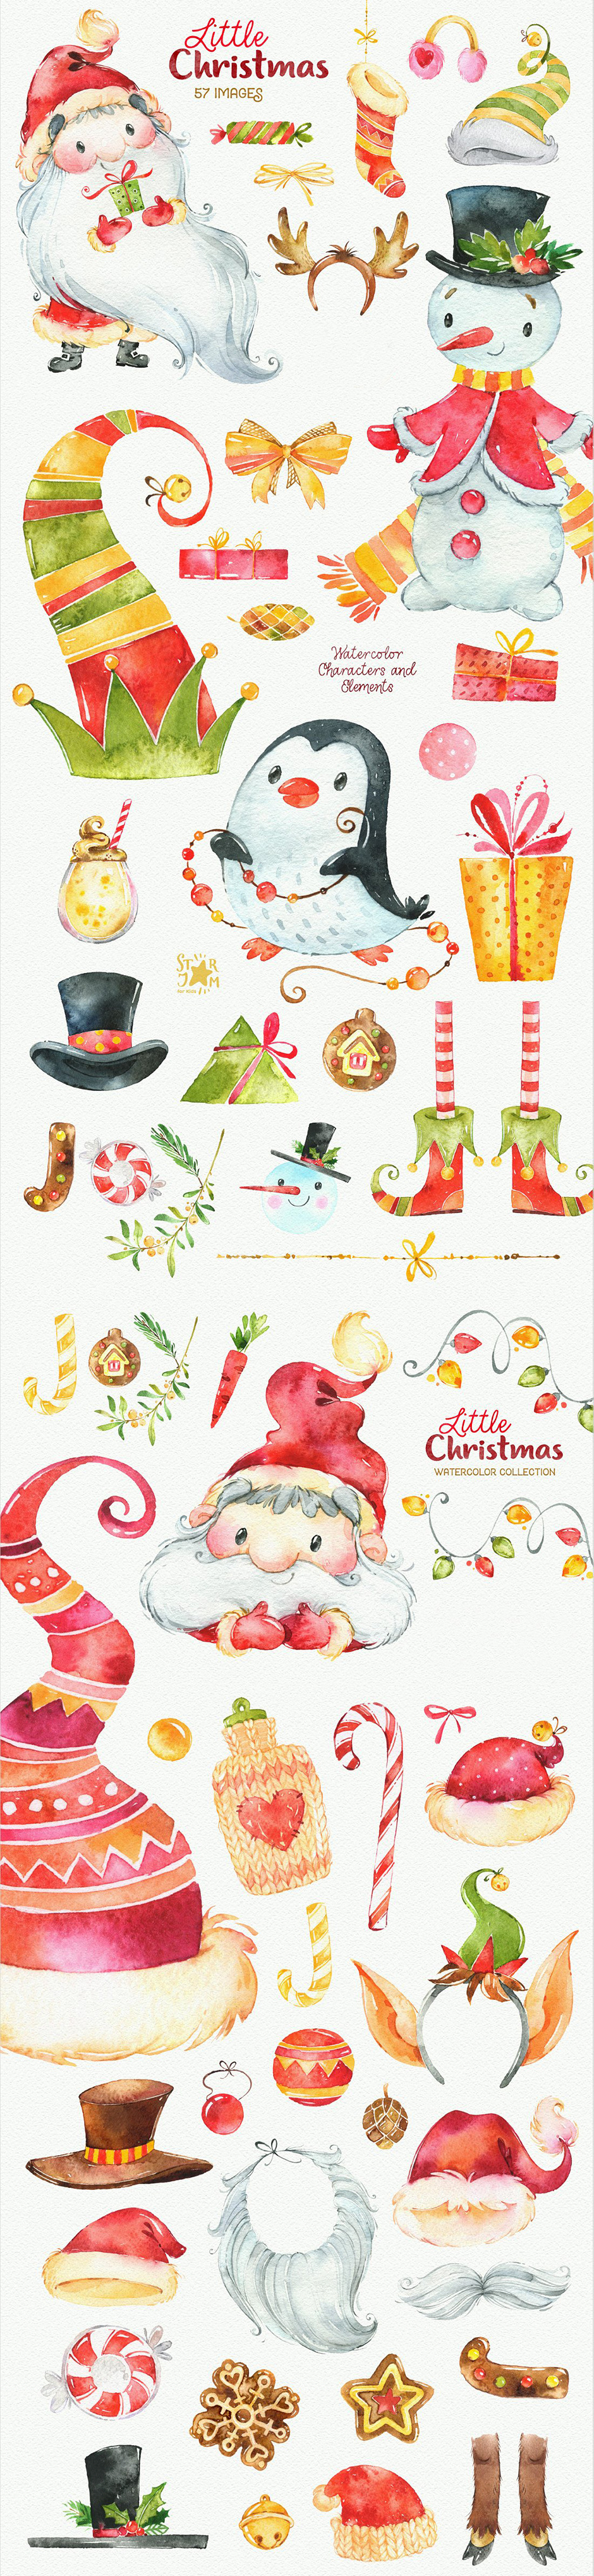 Little Christmas Holiday Collection